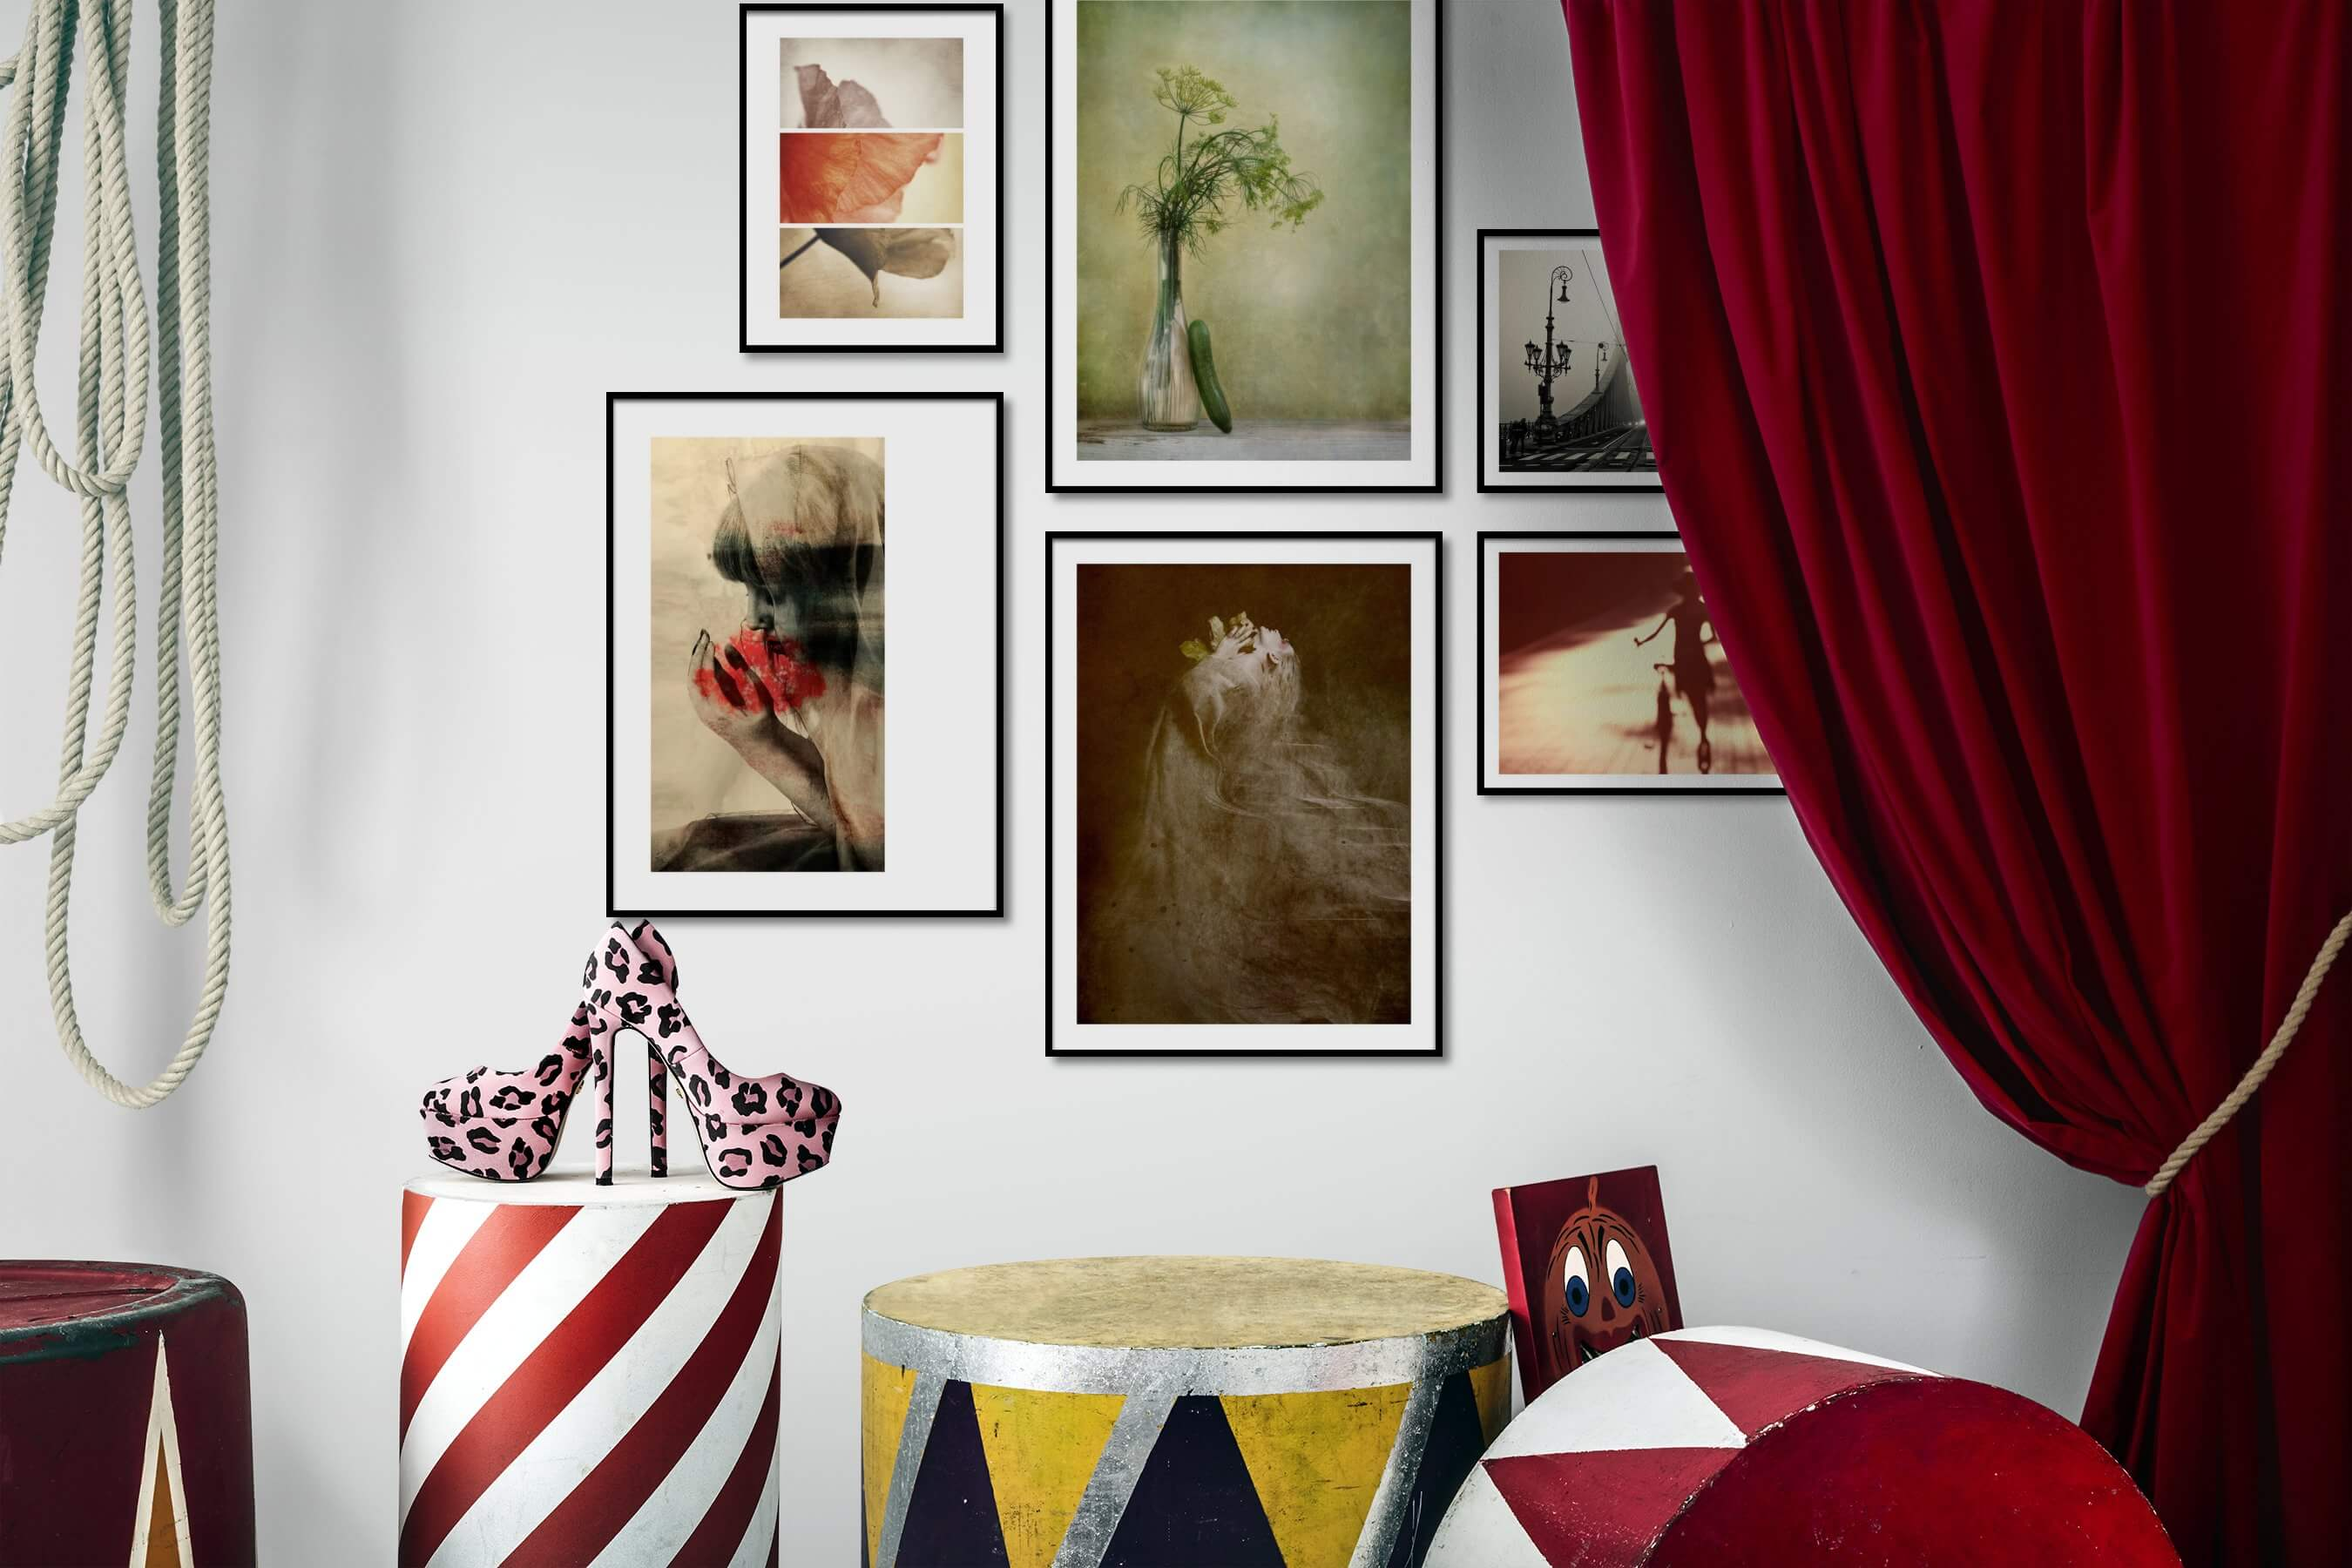 Gallery wall idea with six framed pictures arranged on a wall depicting Flowers & Plants, Vintage, Artsy, Black & White, City Life, Fashion & Beauty, and For the Moderate